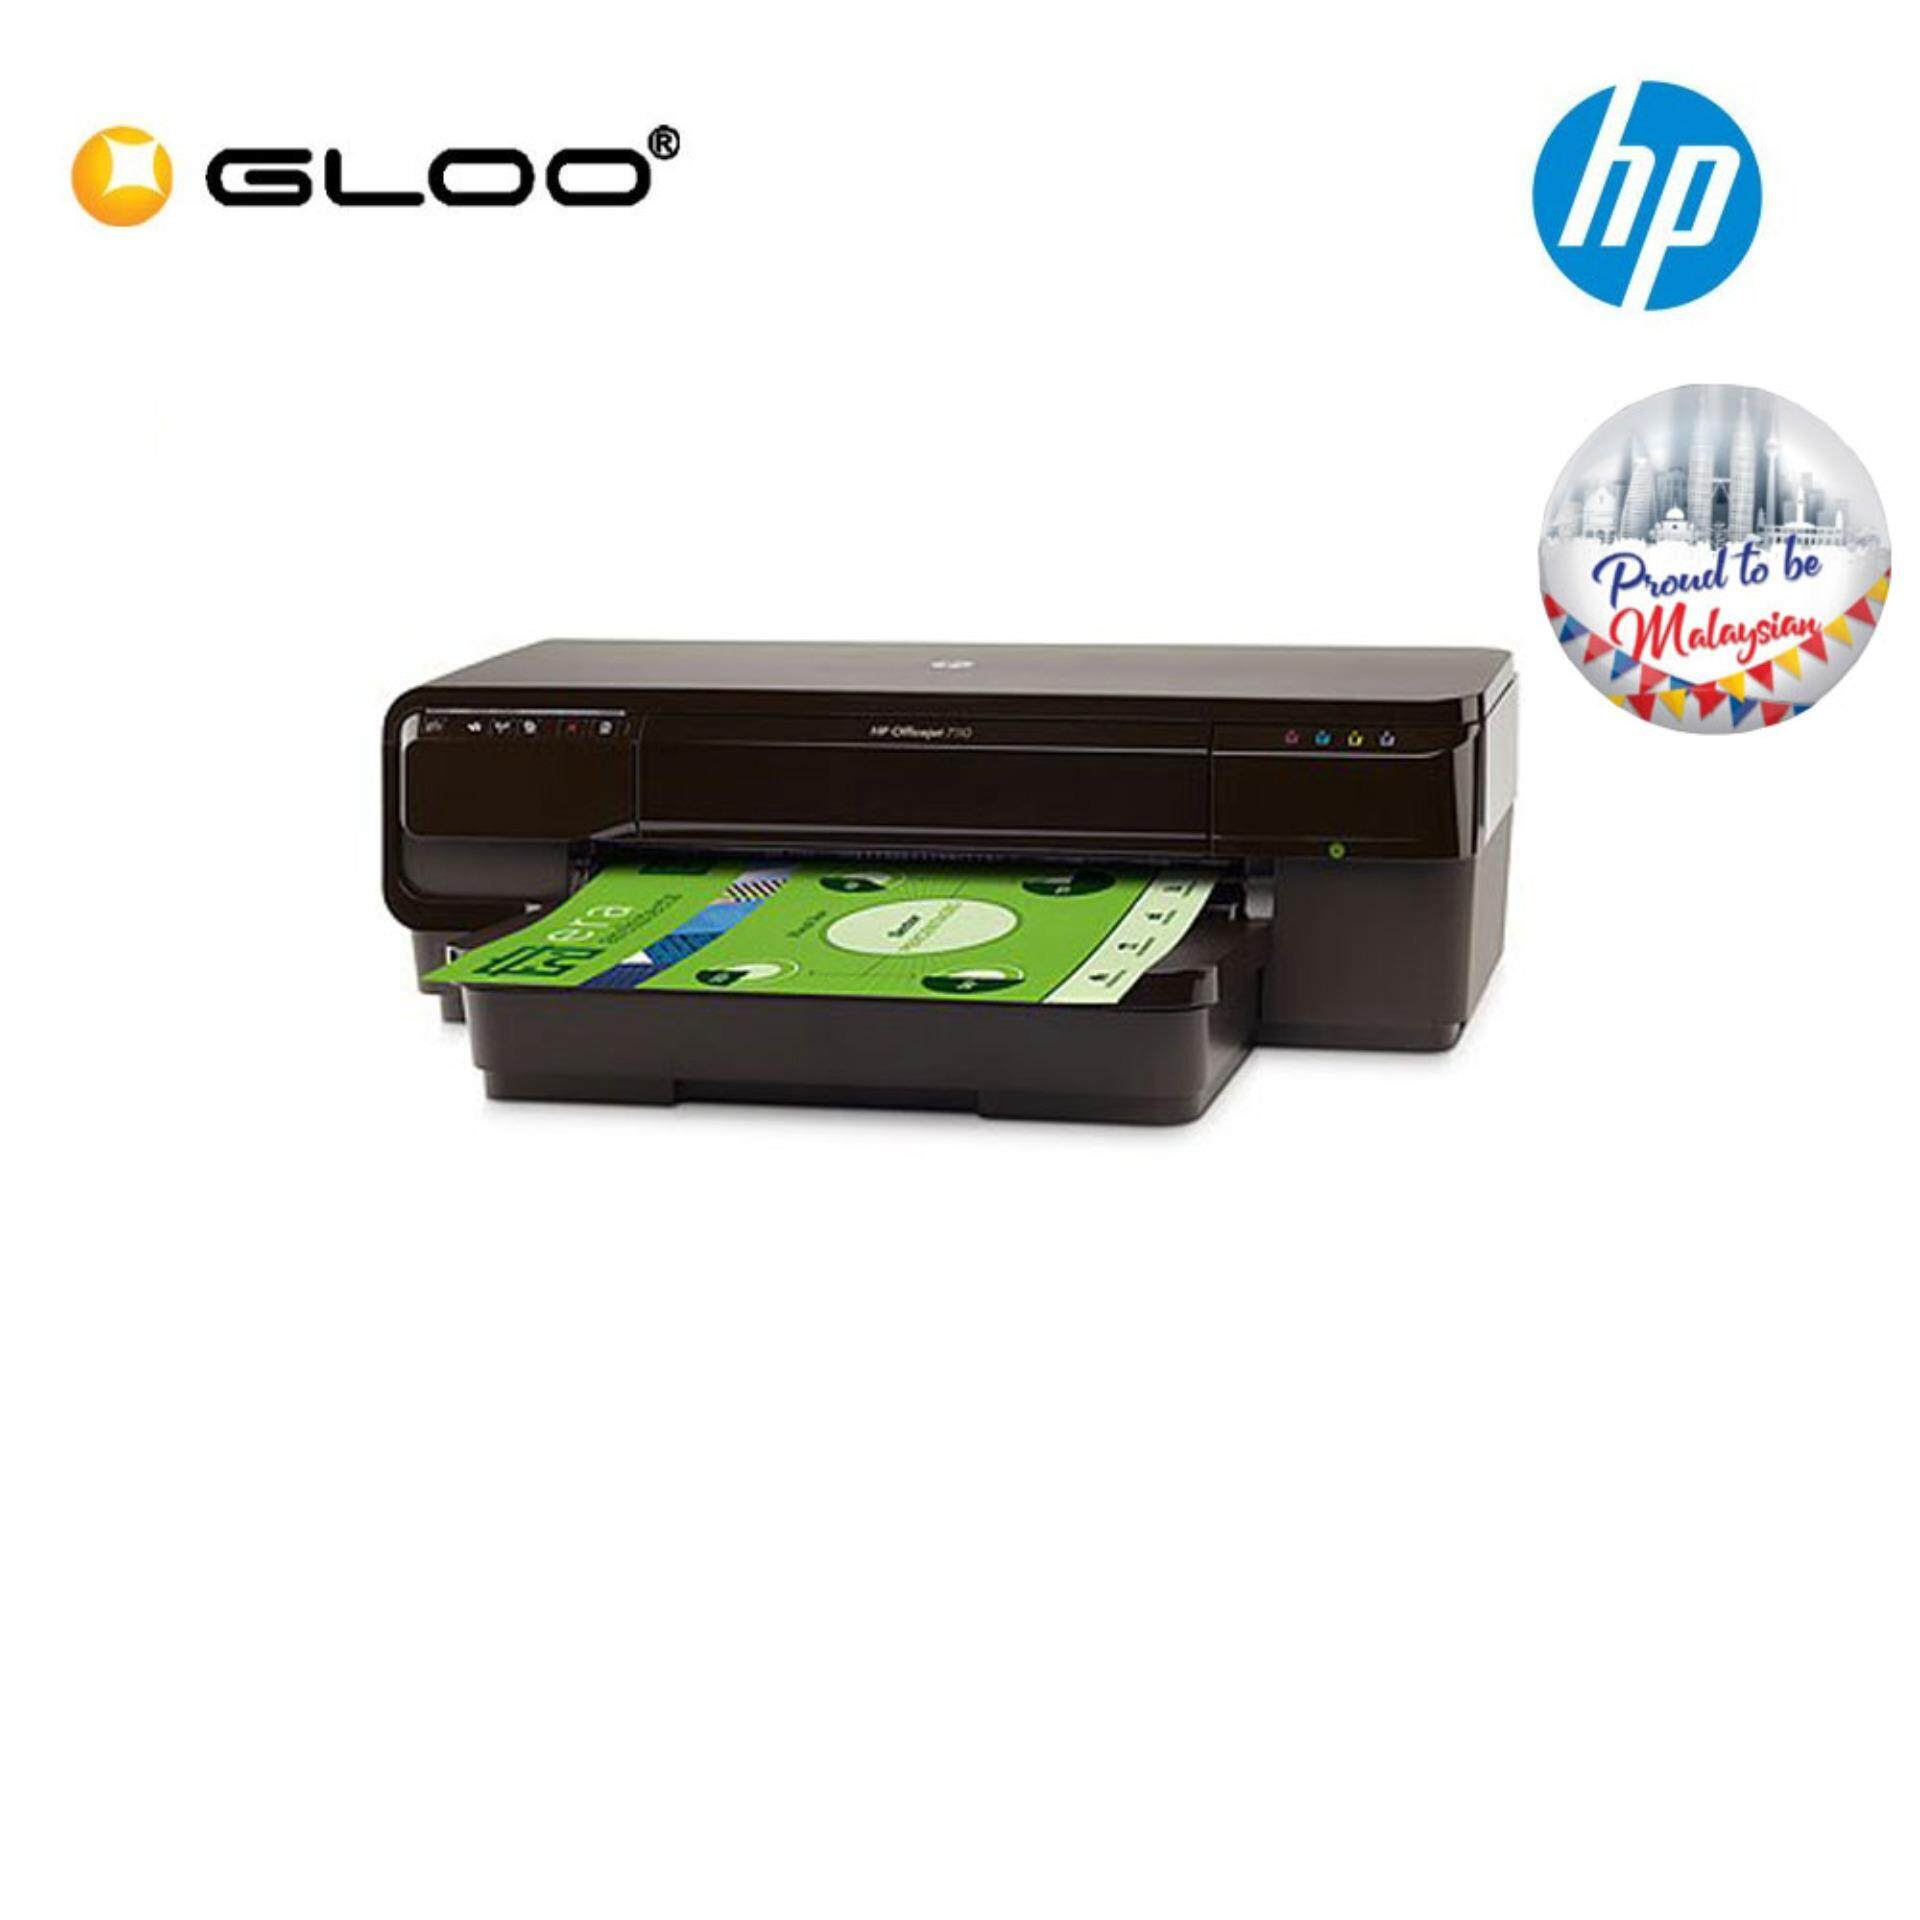 HP Officejet 7110 Wide Format EPrinter [REDEMPTION] Touch & GO/ Boost E- voucher worth RM 80 *16th Aug-20th Oct 2019*